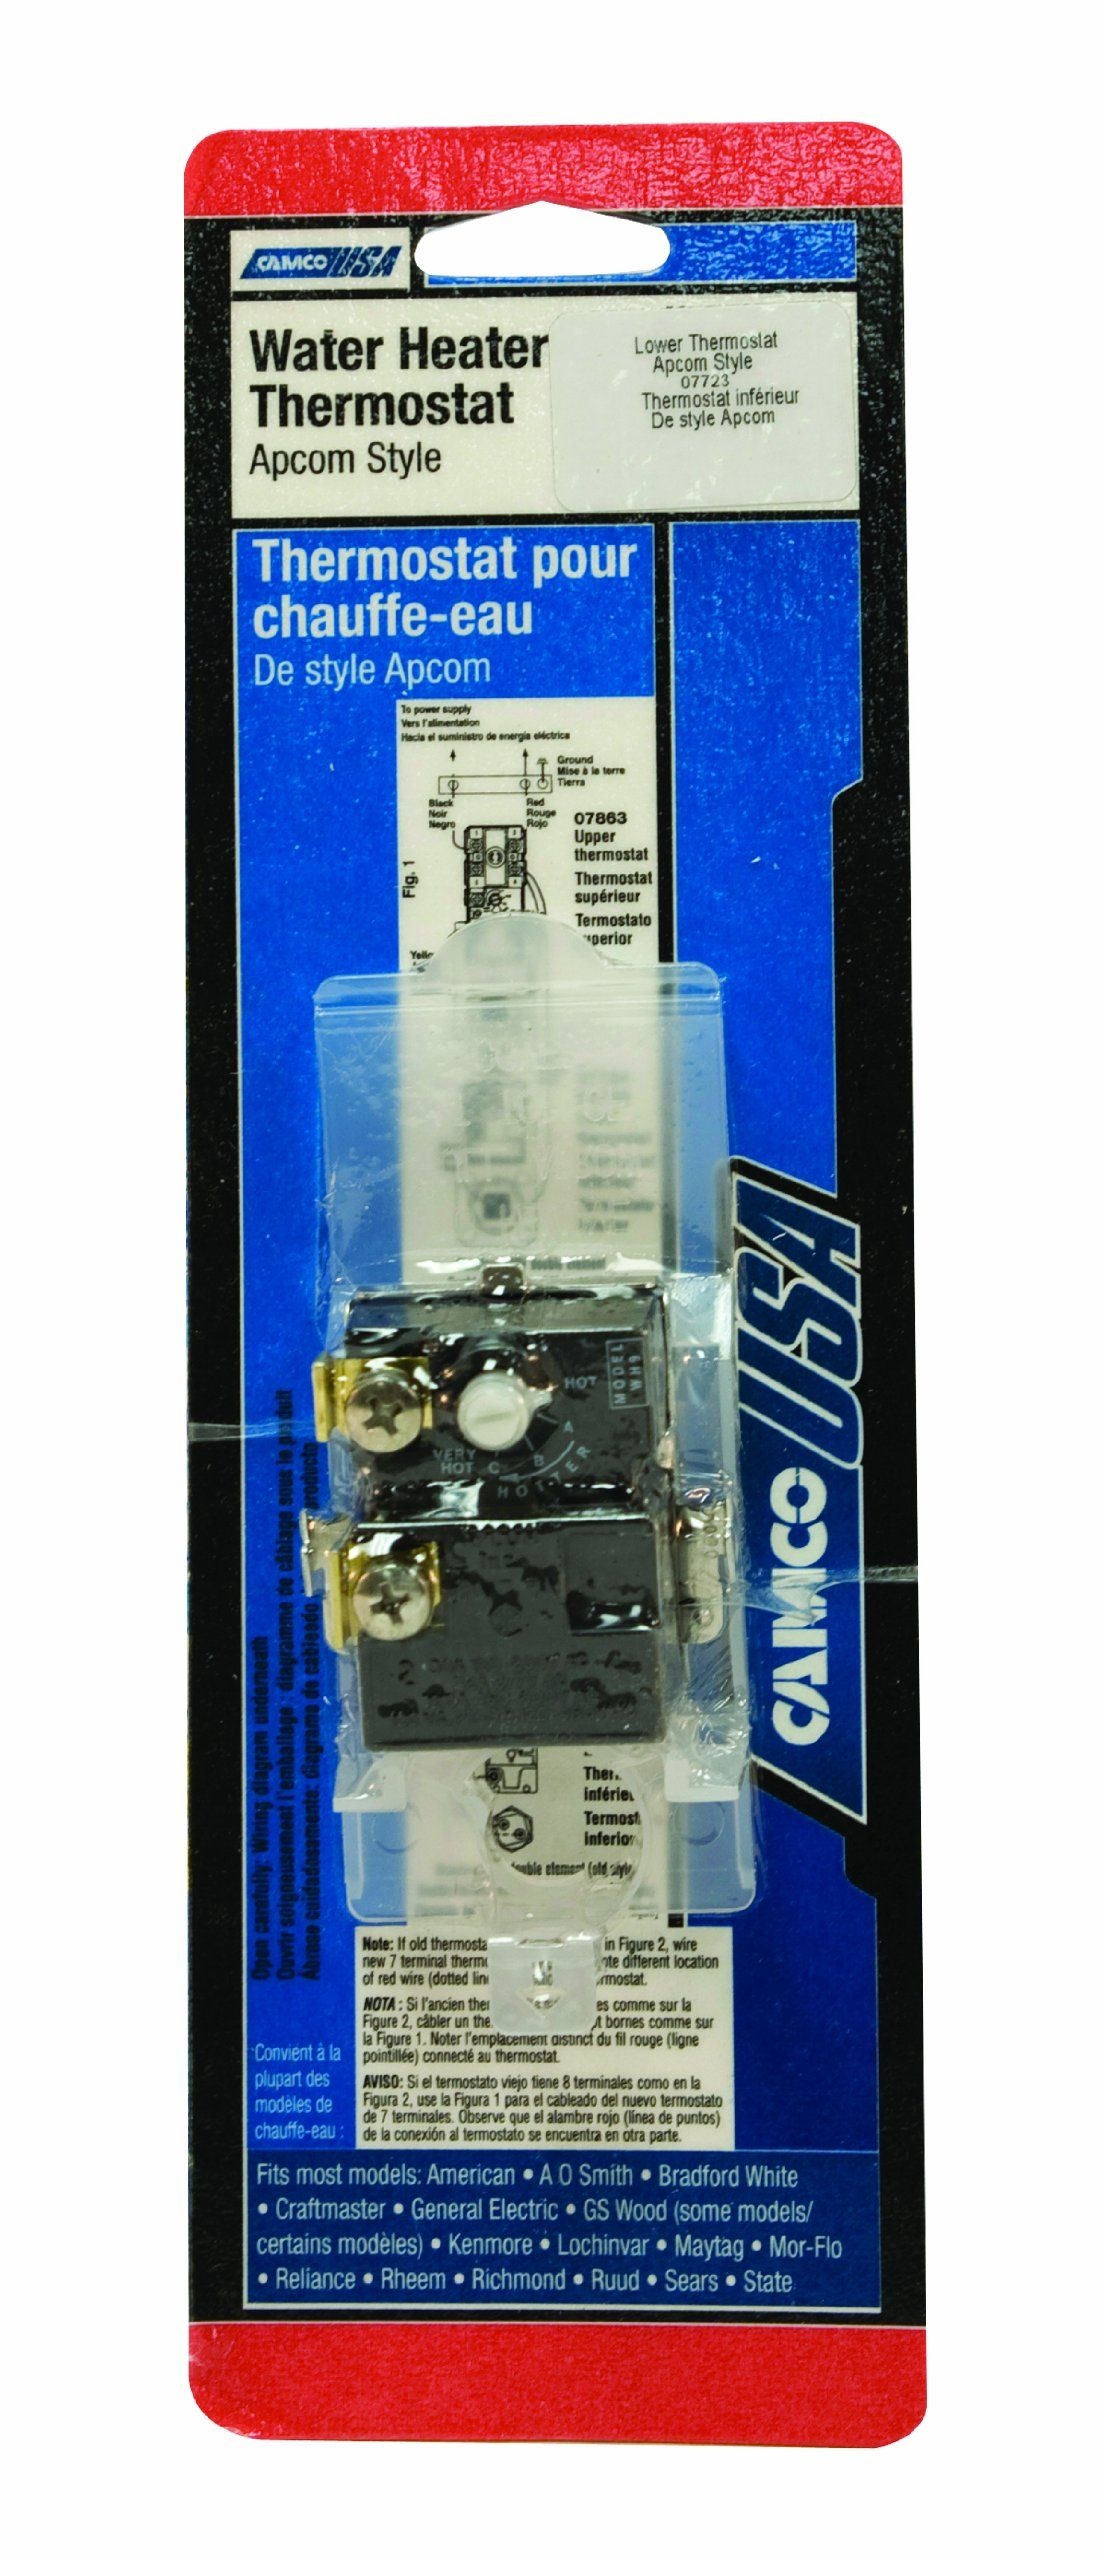 Camco 07723 Wh9 Lower Thermostat Apcom Style Ad Camco Affiliate Style Apcom Thermostat With Images Camco Thermostat